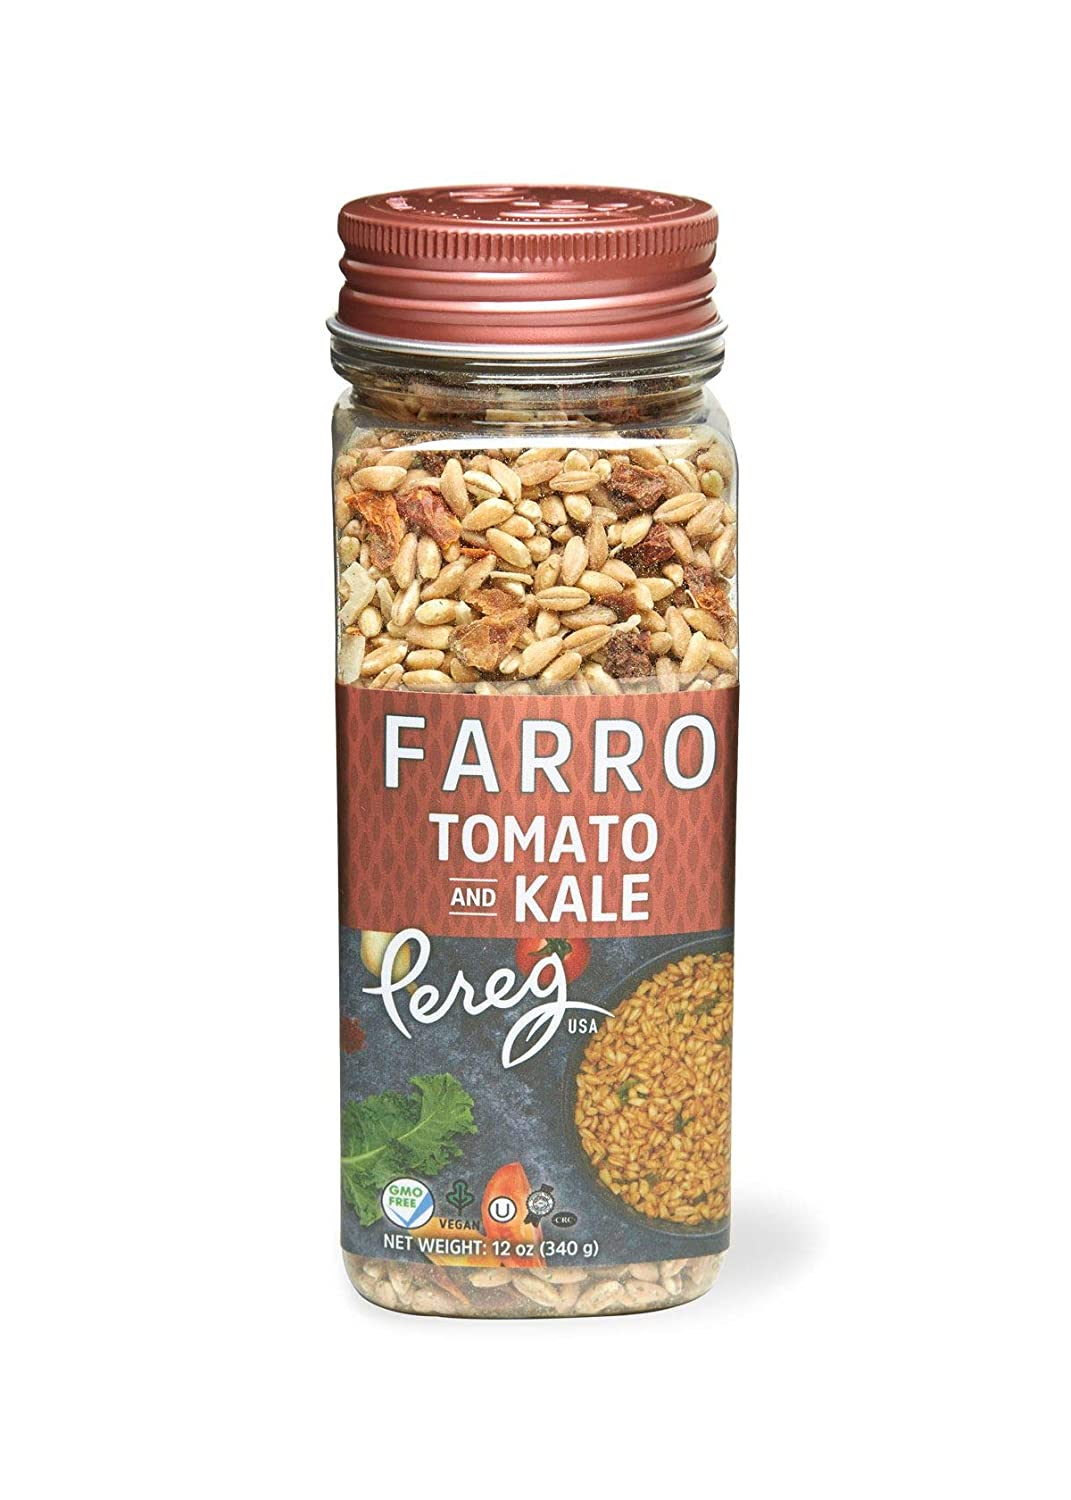 Pereg Farro Whole Grain with Sundried Tomato Canister (12 Oz) - Vegan Gourmet Food - Healthy Quick Meal - Easy to Cook - Perfect Side Dish - Natural Ingredients - Non-GMO -& Kosher Certified